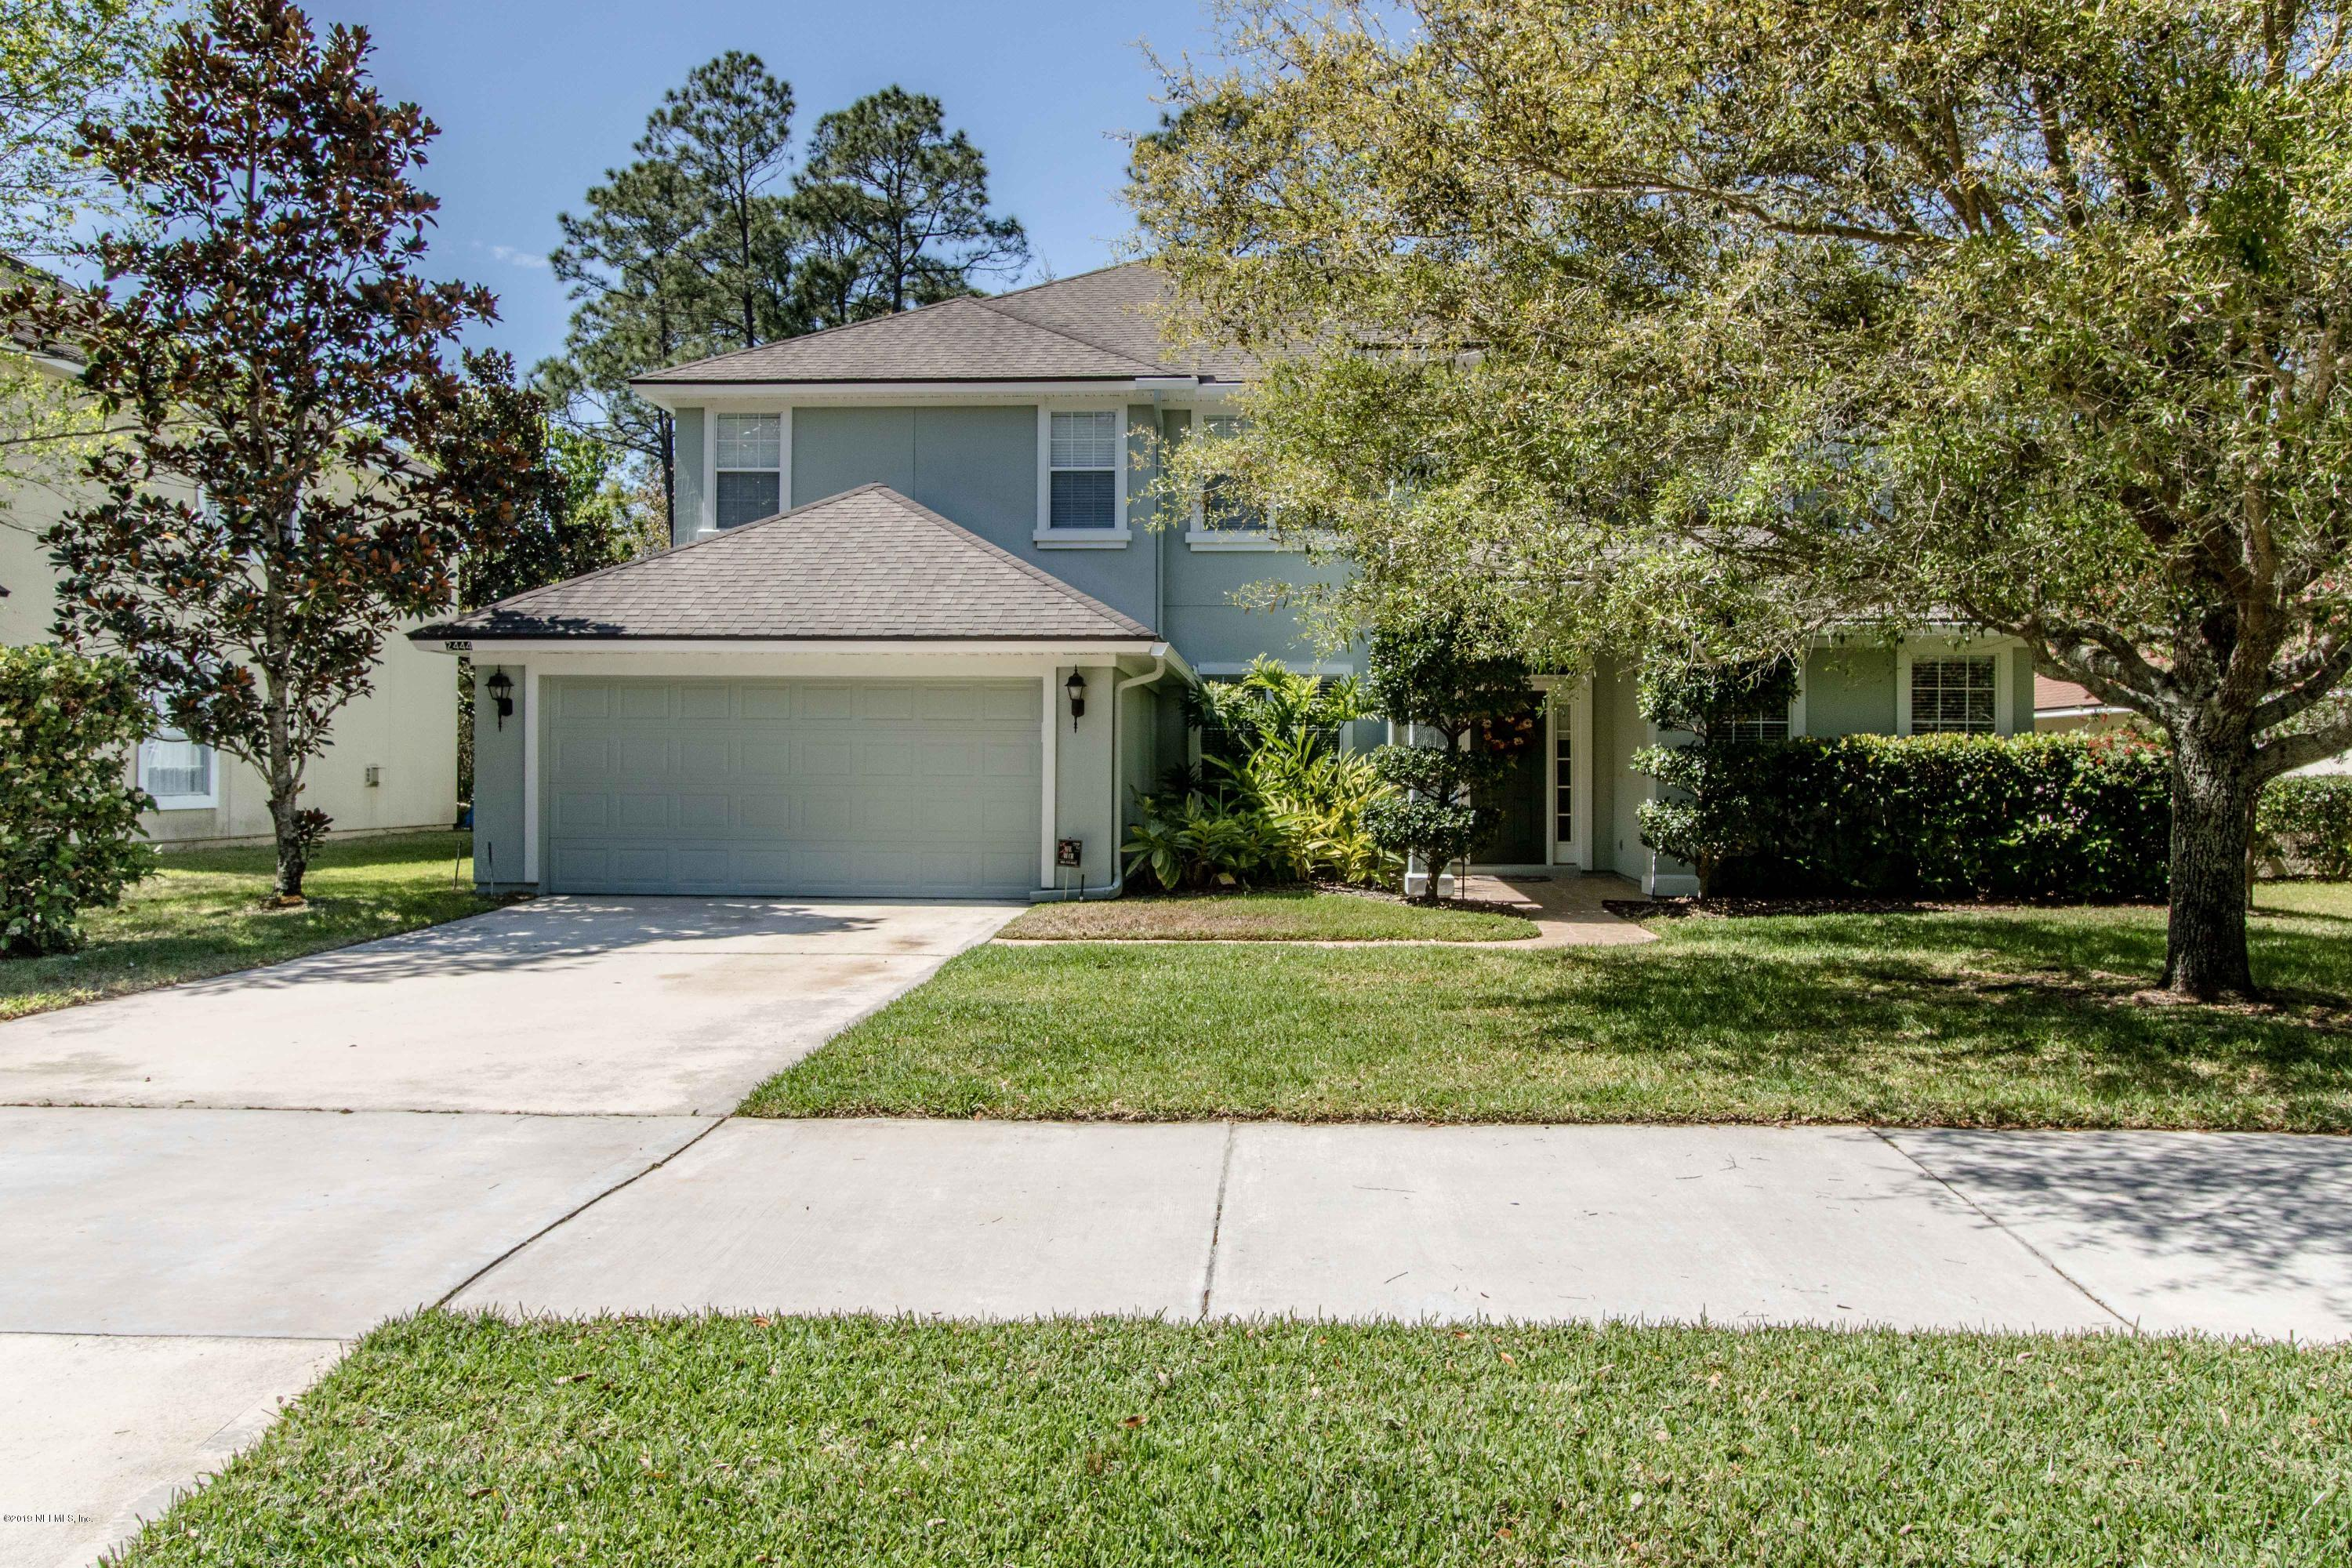 Photo of 2444 COUNTRY SIDE, FLEMING ISLAND, FL 32003